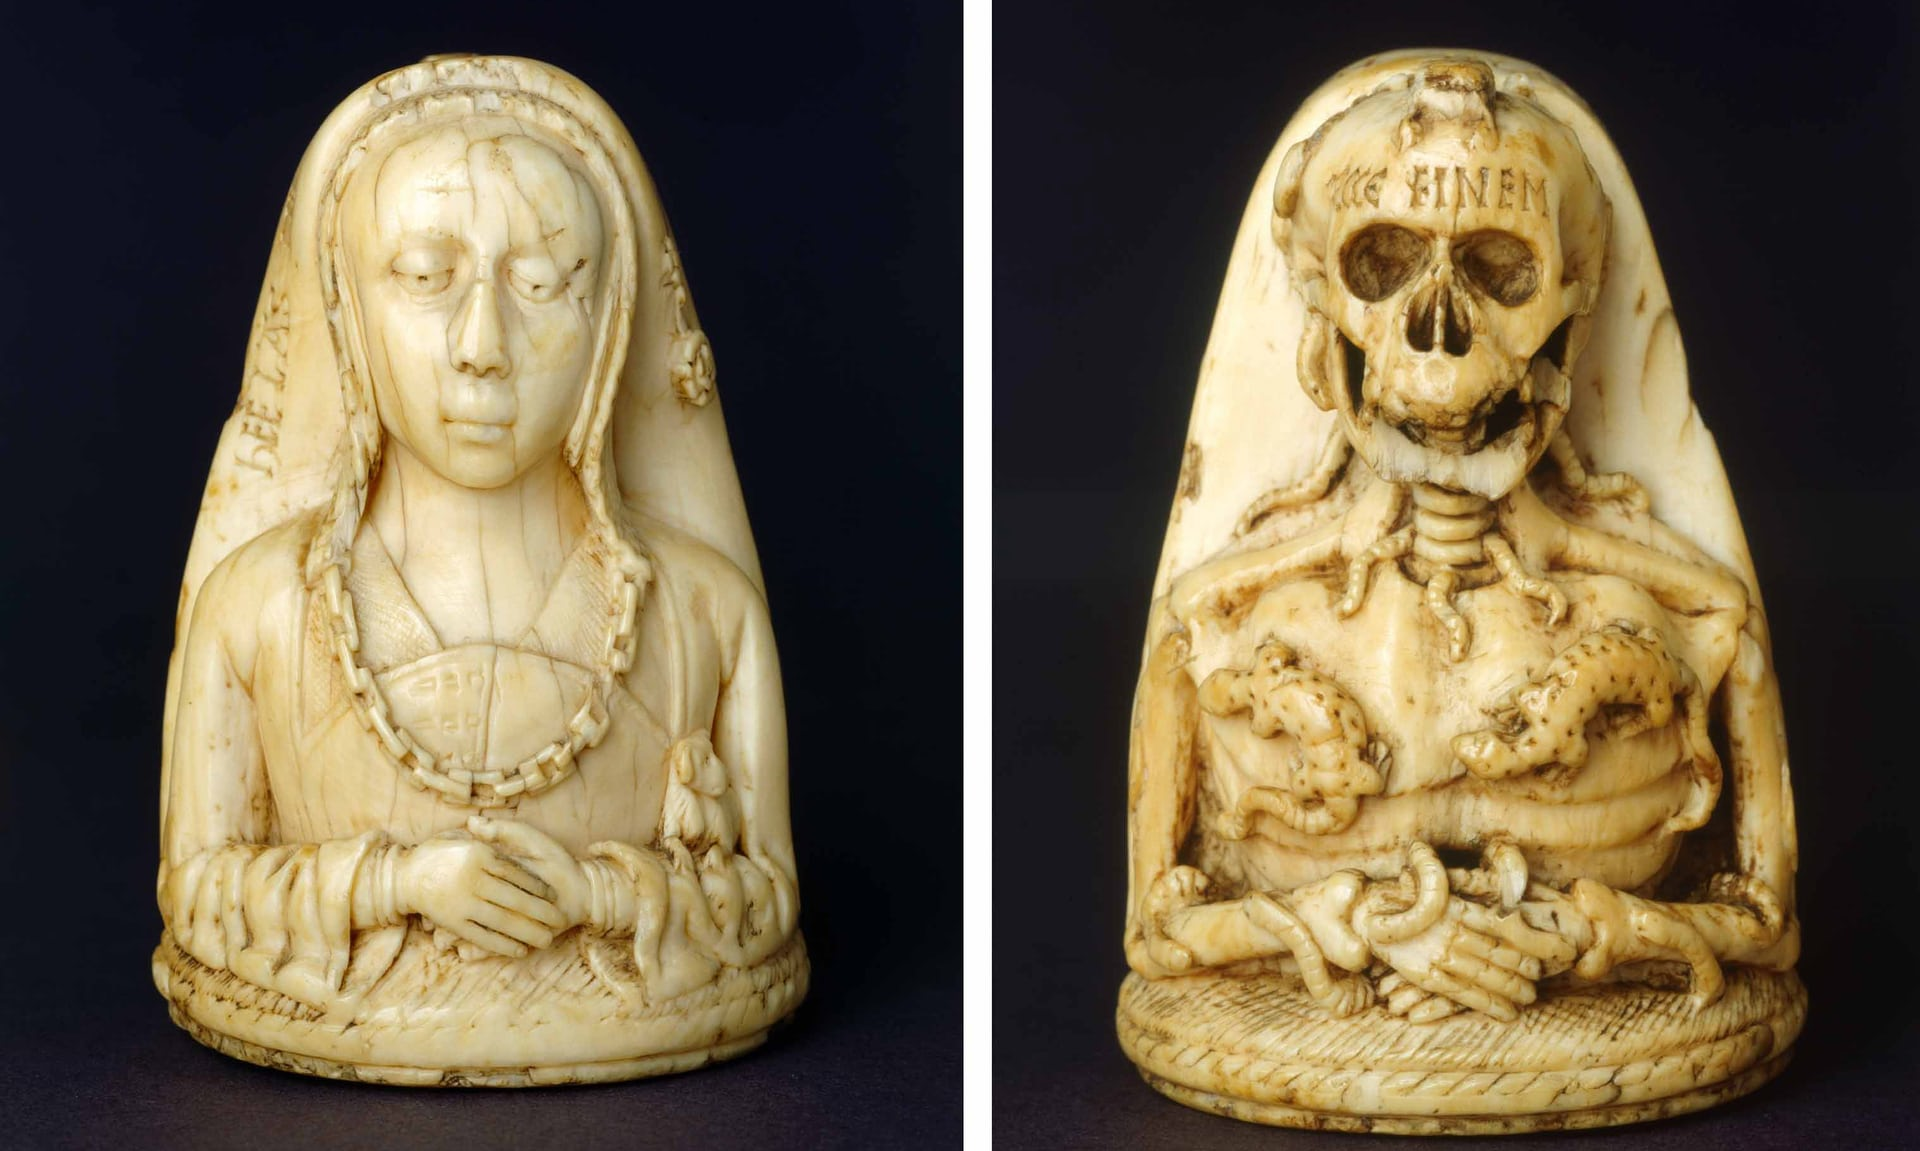 1475-1500 TroncDoubleB HELAS ECCE FINEM._French_ivory London, The Wernher Collection, Ranger's House